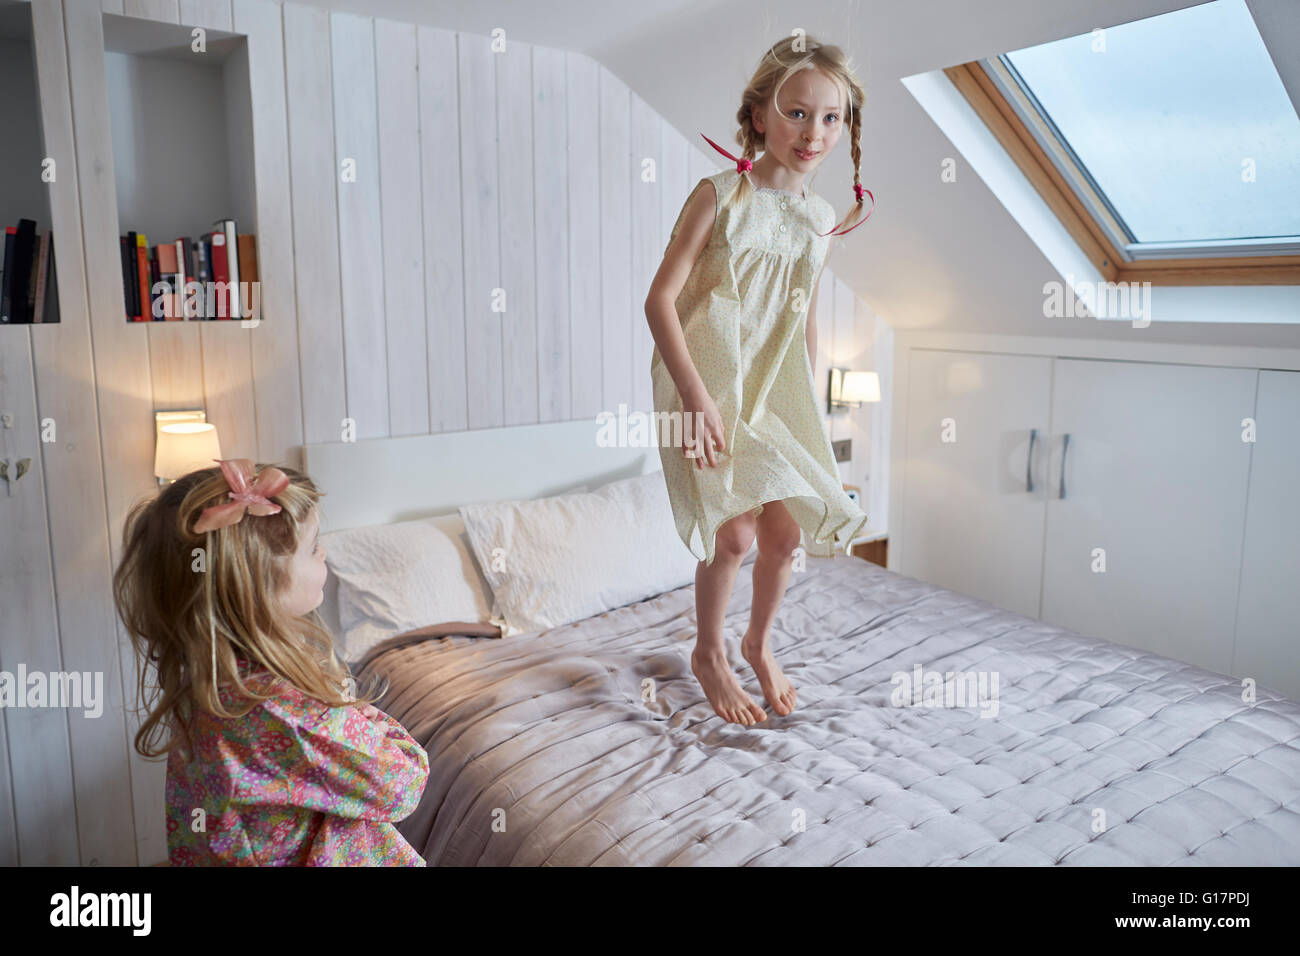 Girl jumping on bed in loft room - Stock Image